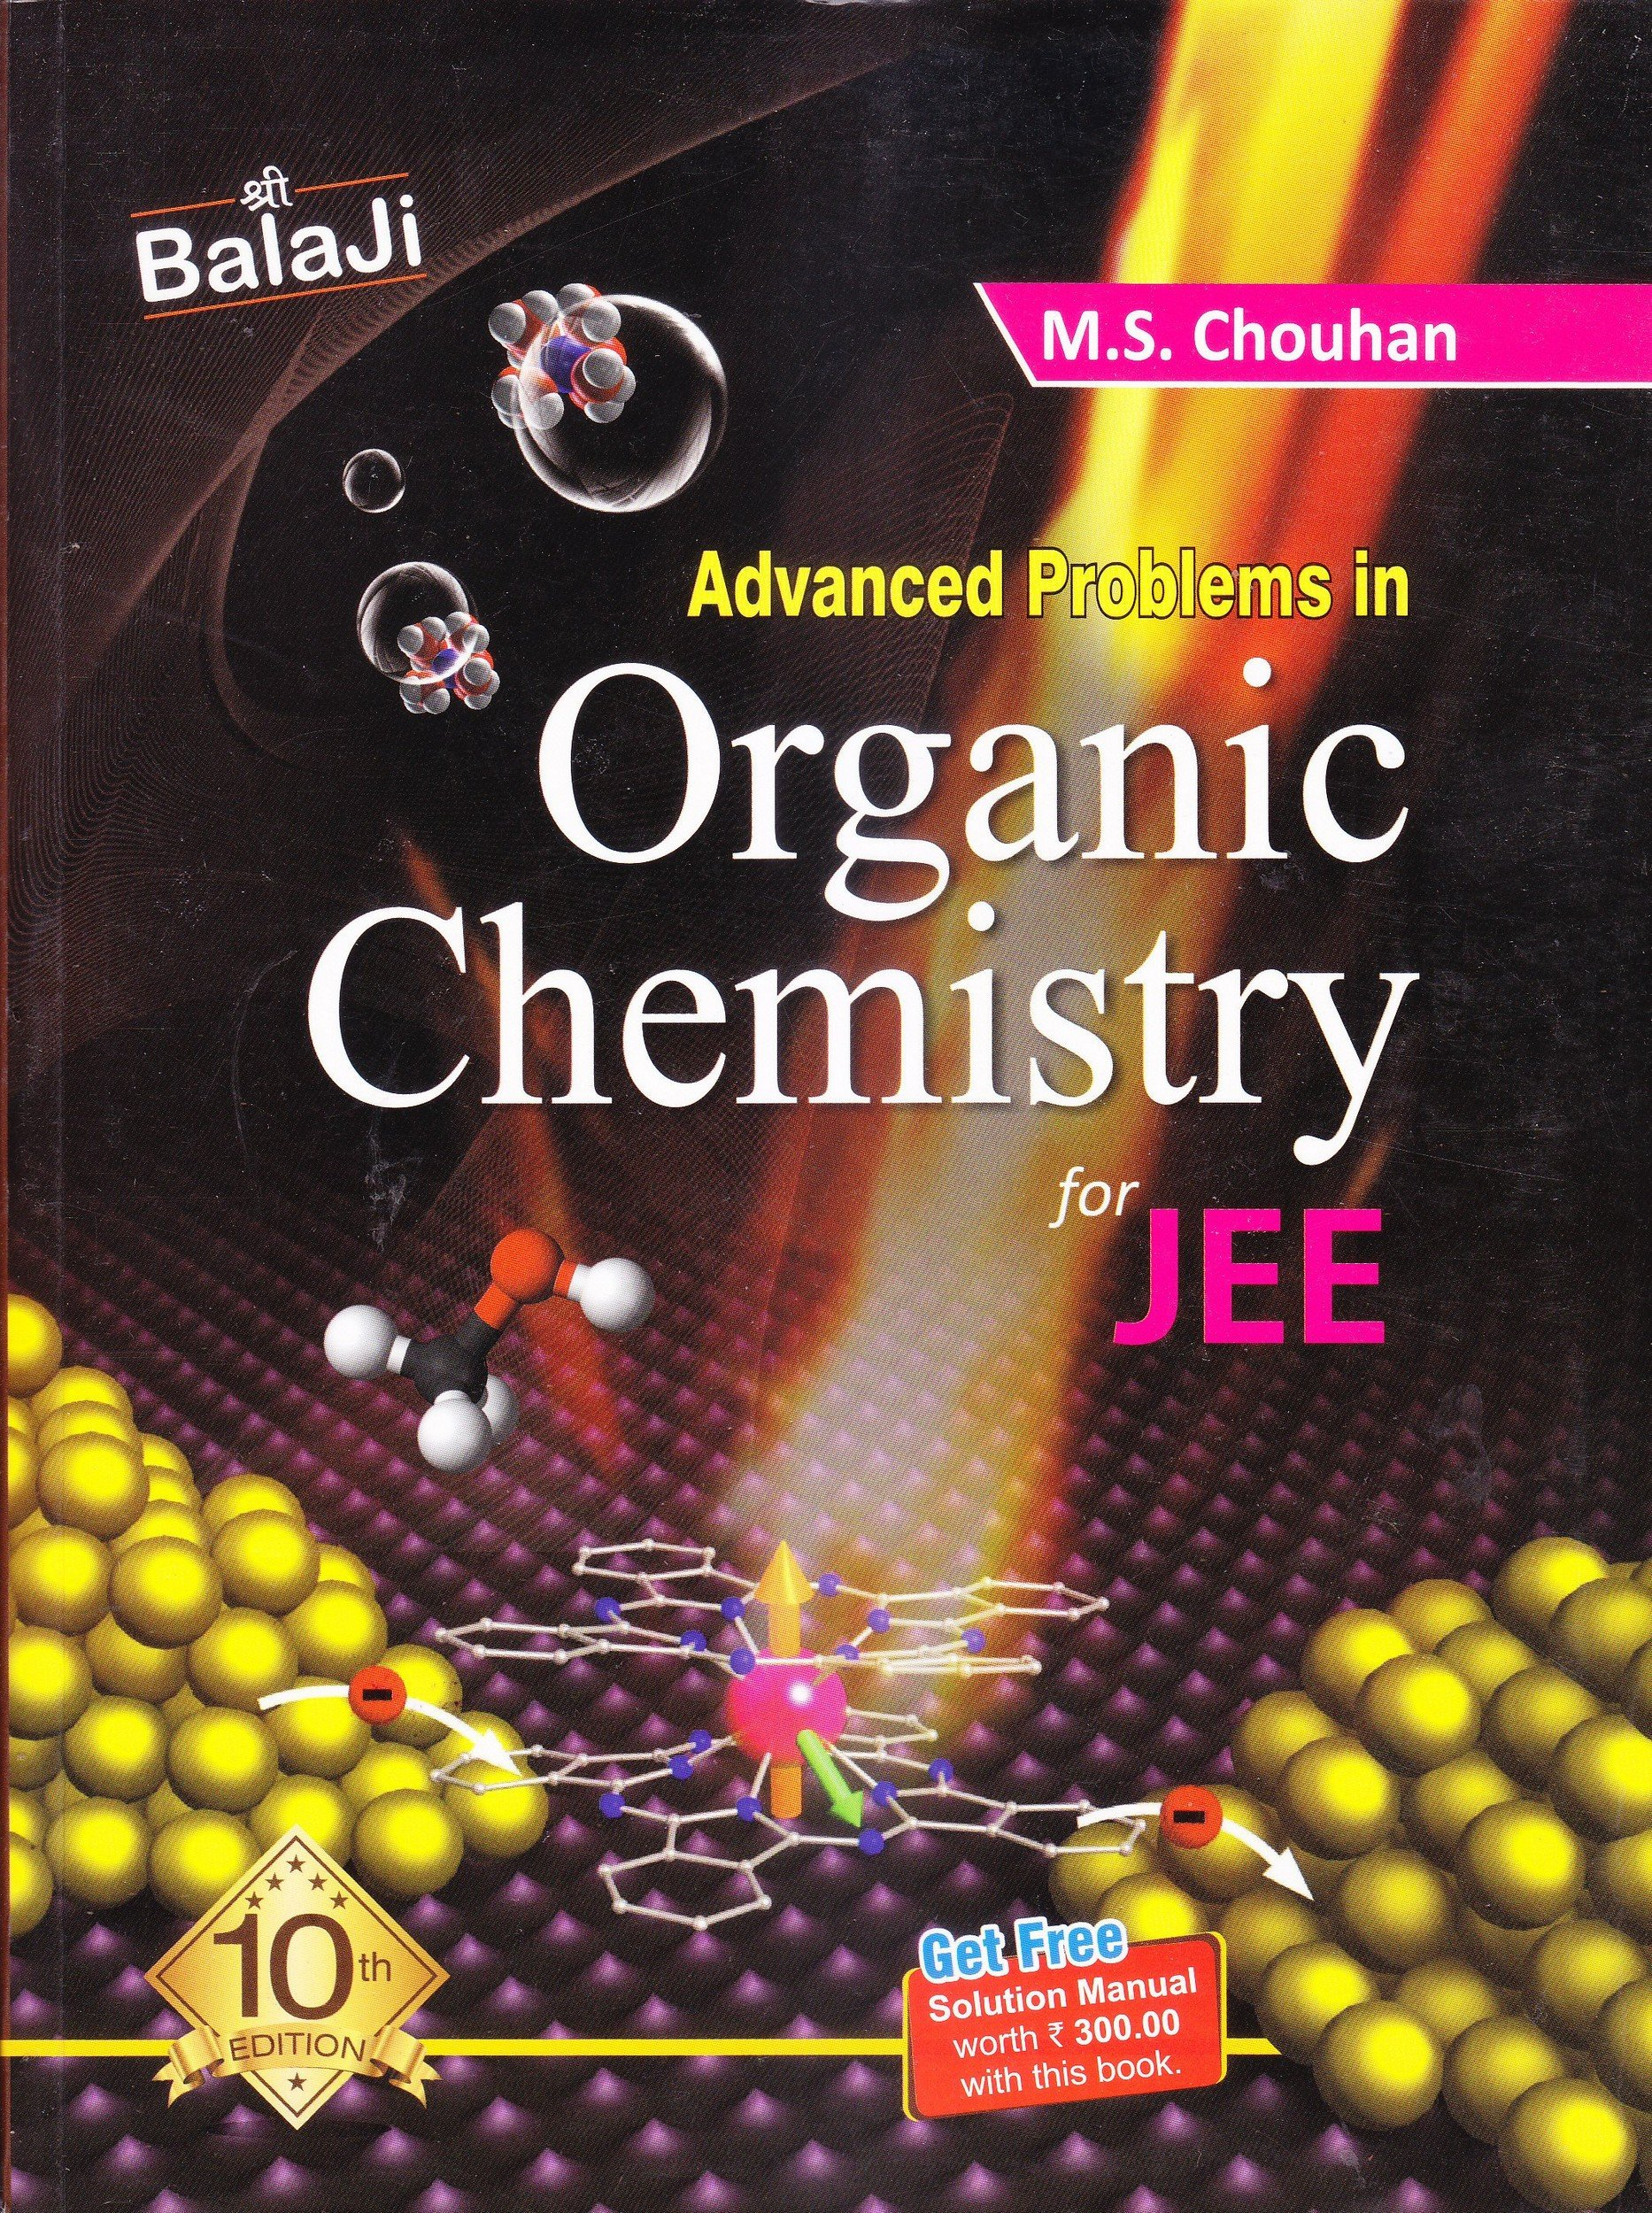 chemistry problem solver online buy pearson iit foundation  in buy advanced problems in organic chemistry for jee book in buy advanced problems in organic